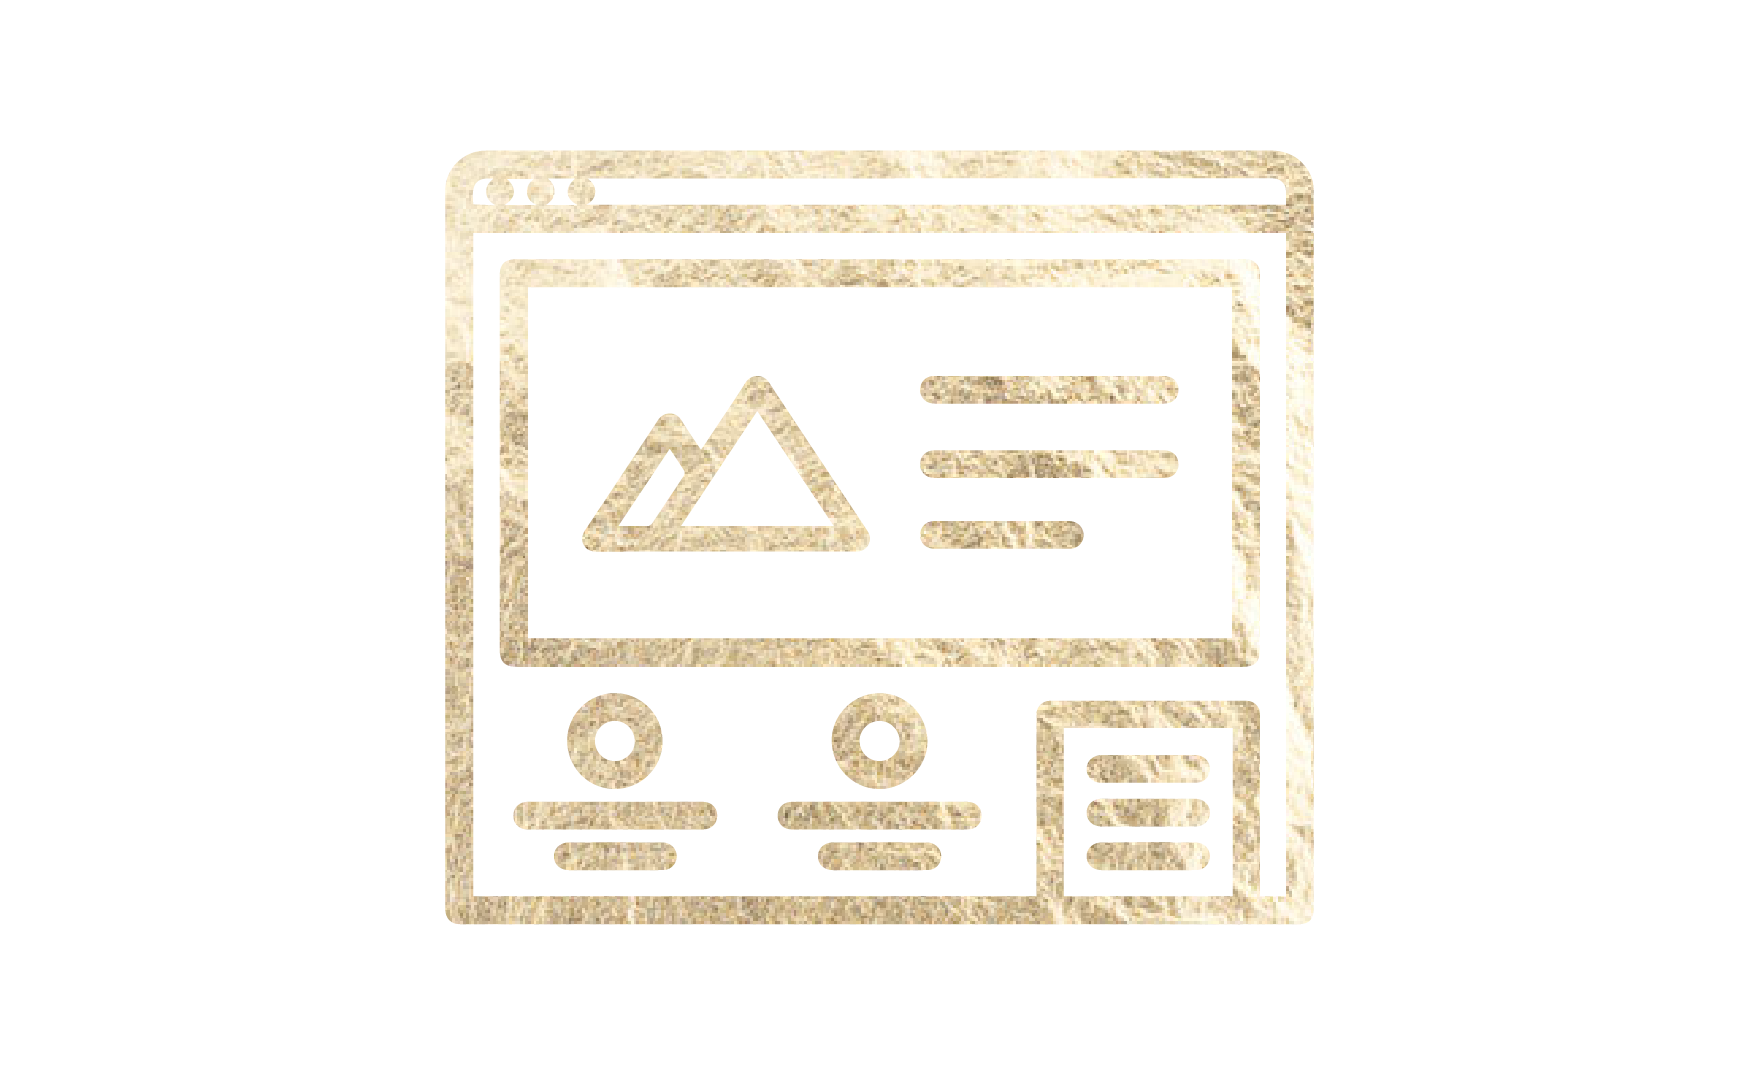 Web page layout icon